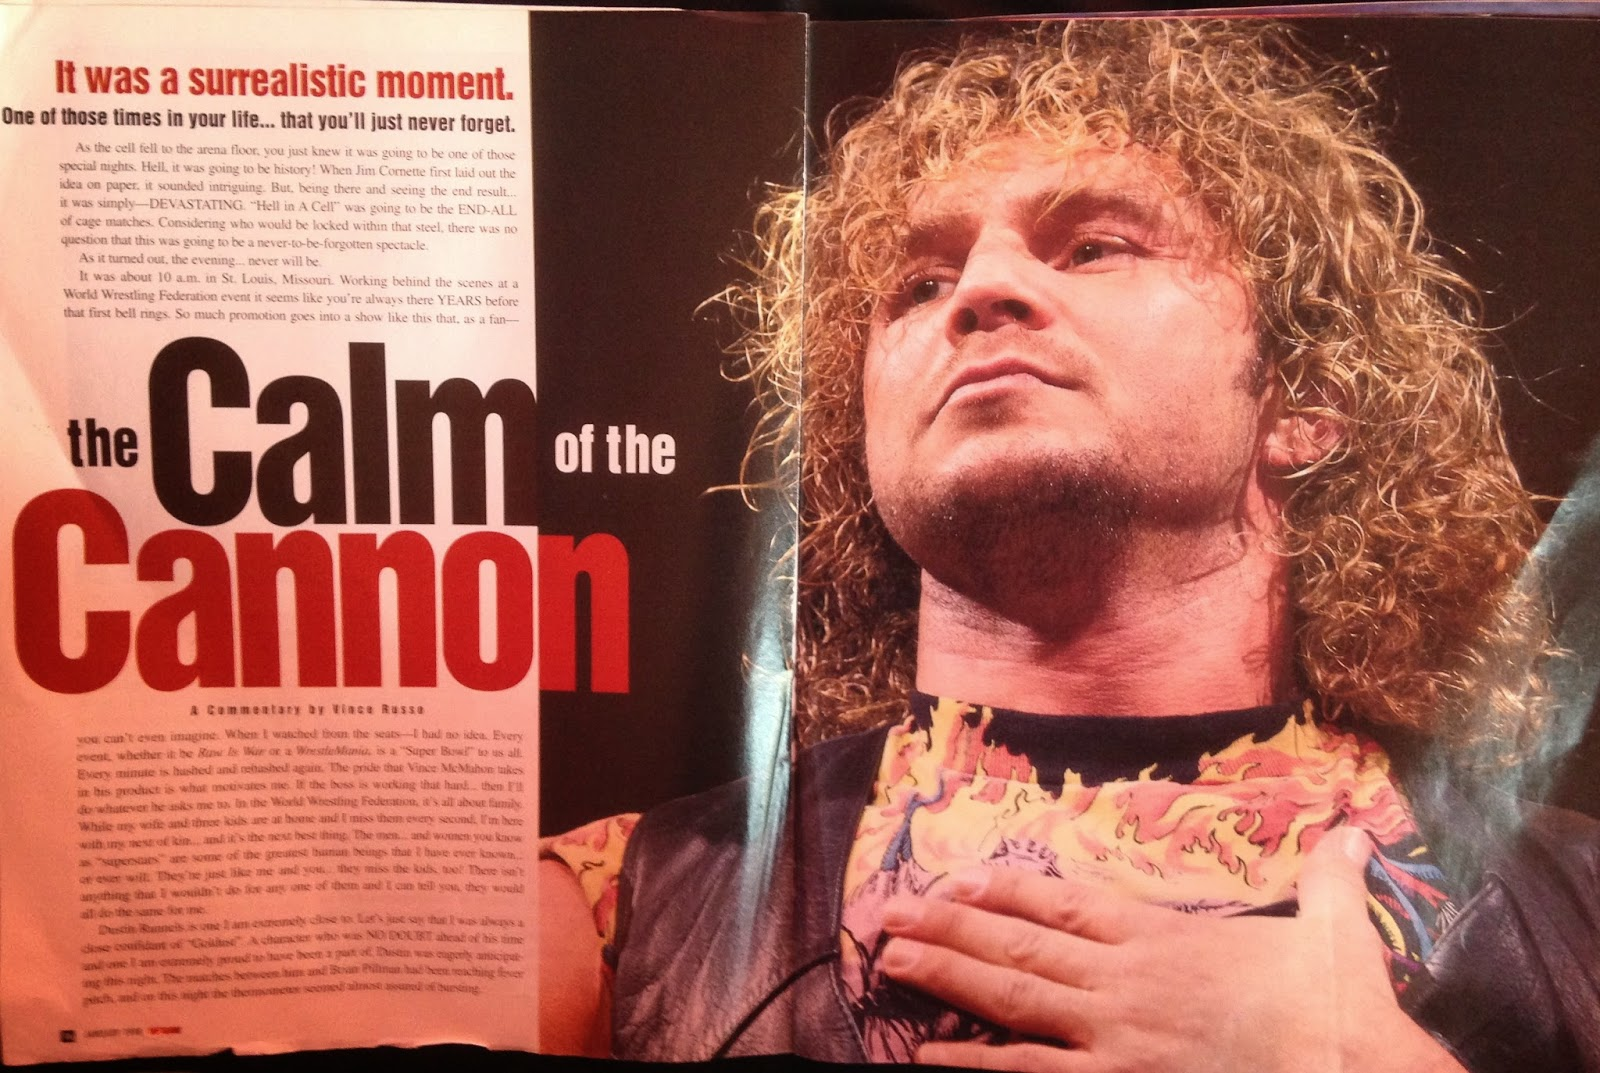 WWE: WWF RAW MAGAZINE - January 1998 - In memory of Brian Pillman